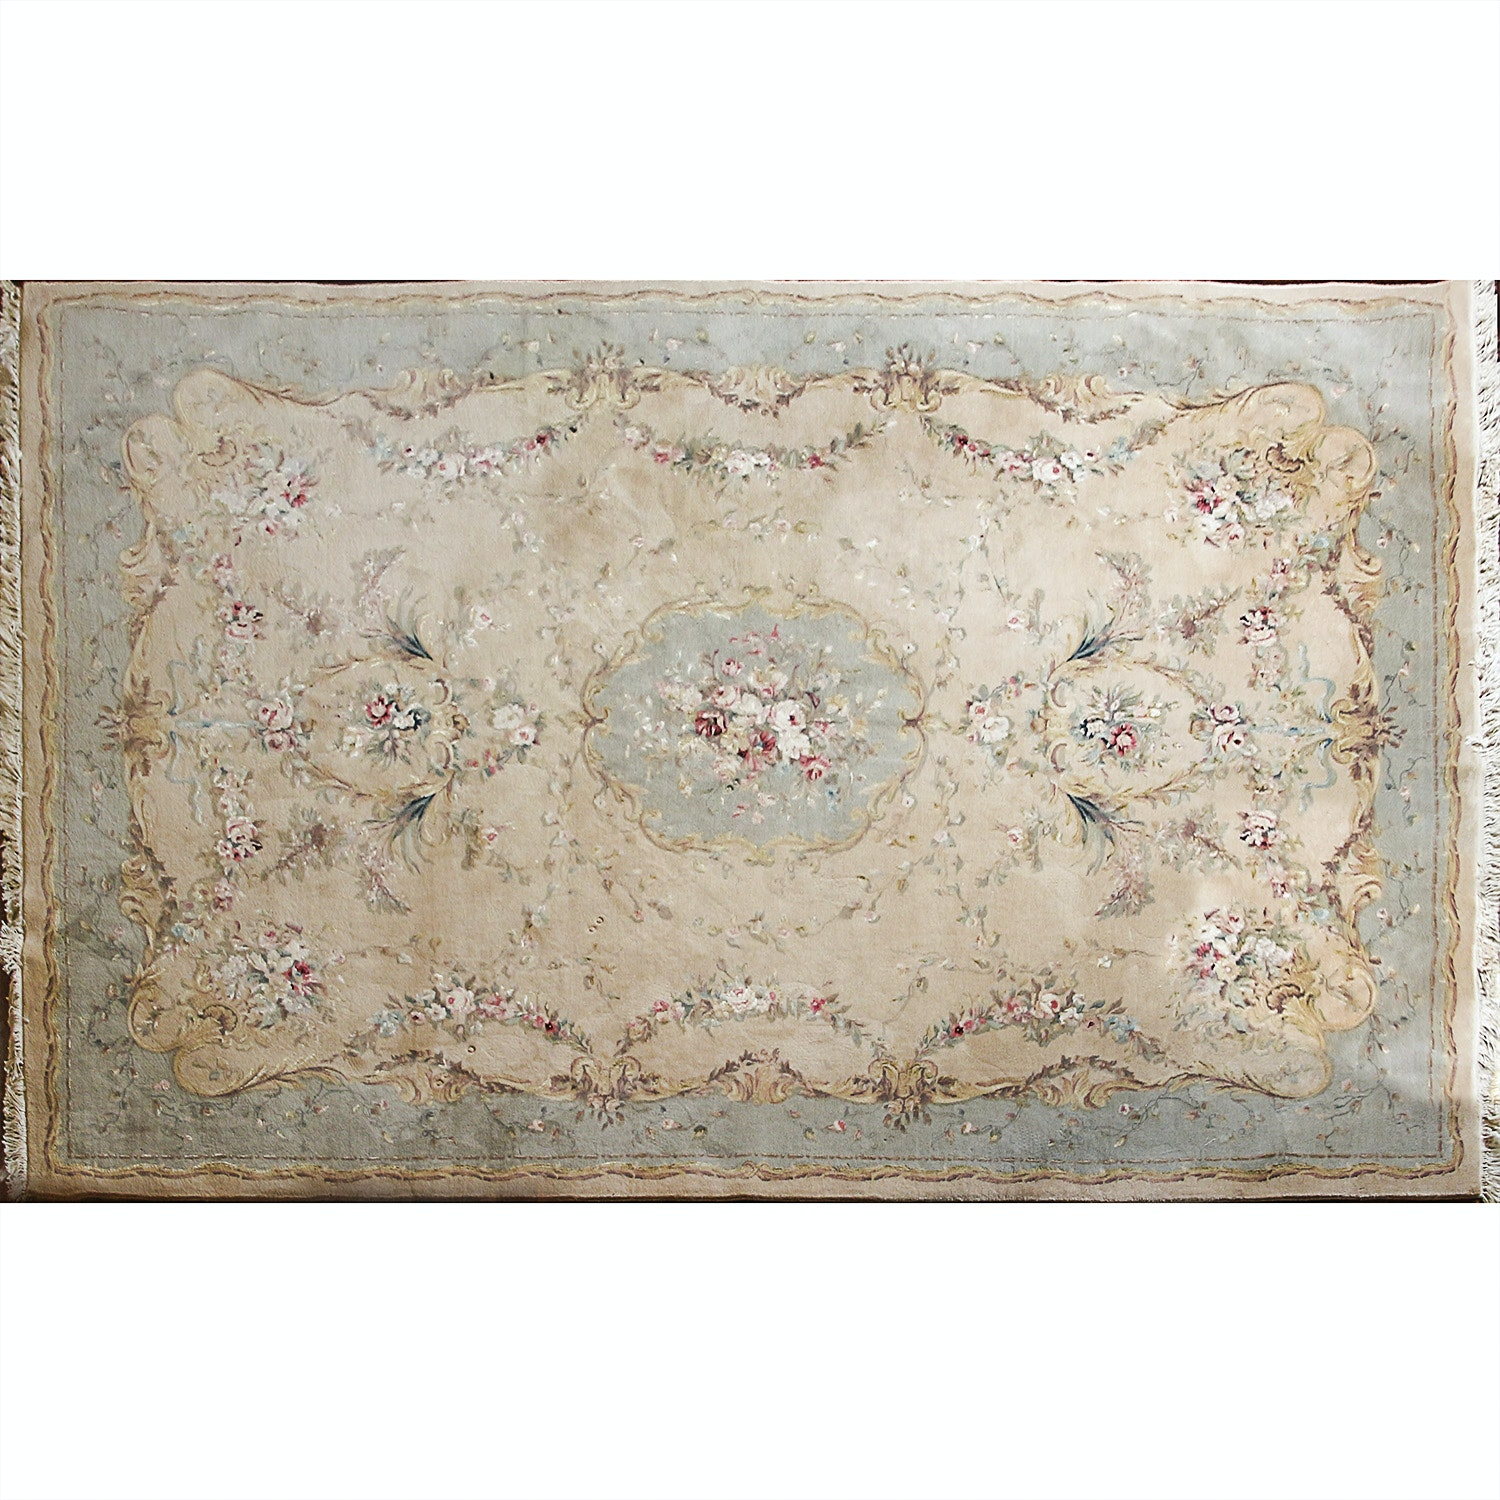 Hand-Knotted Chinese Aubusson-Style Wool Room Sized Rug